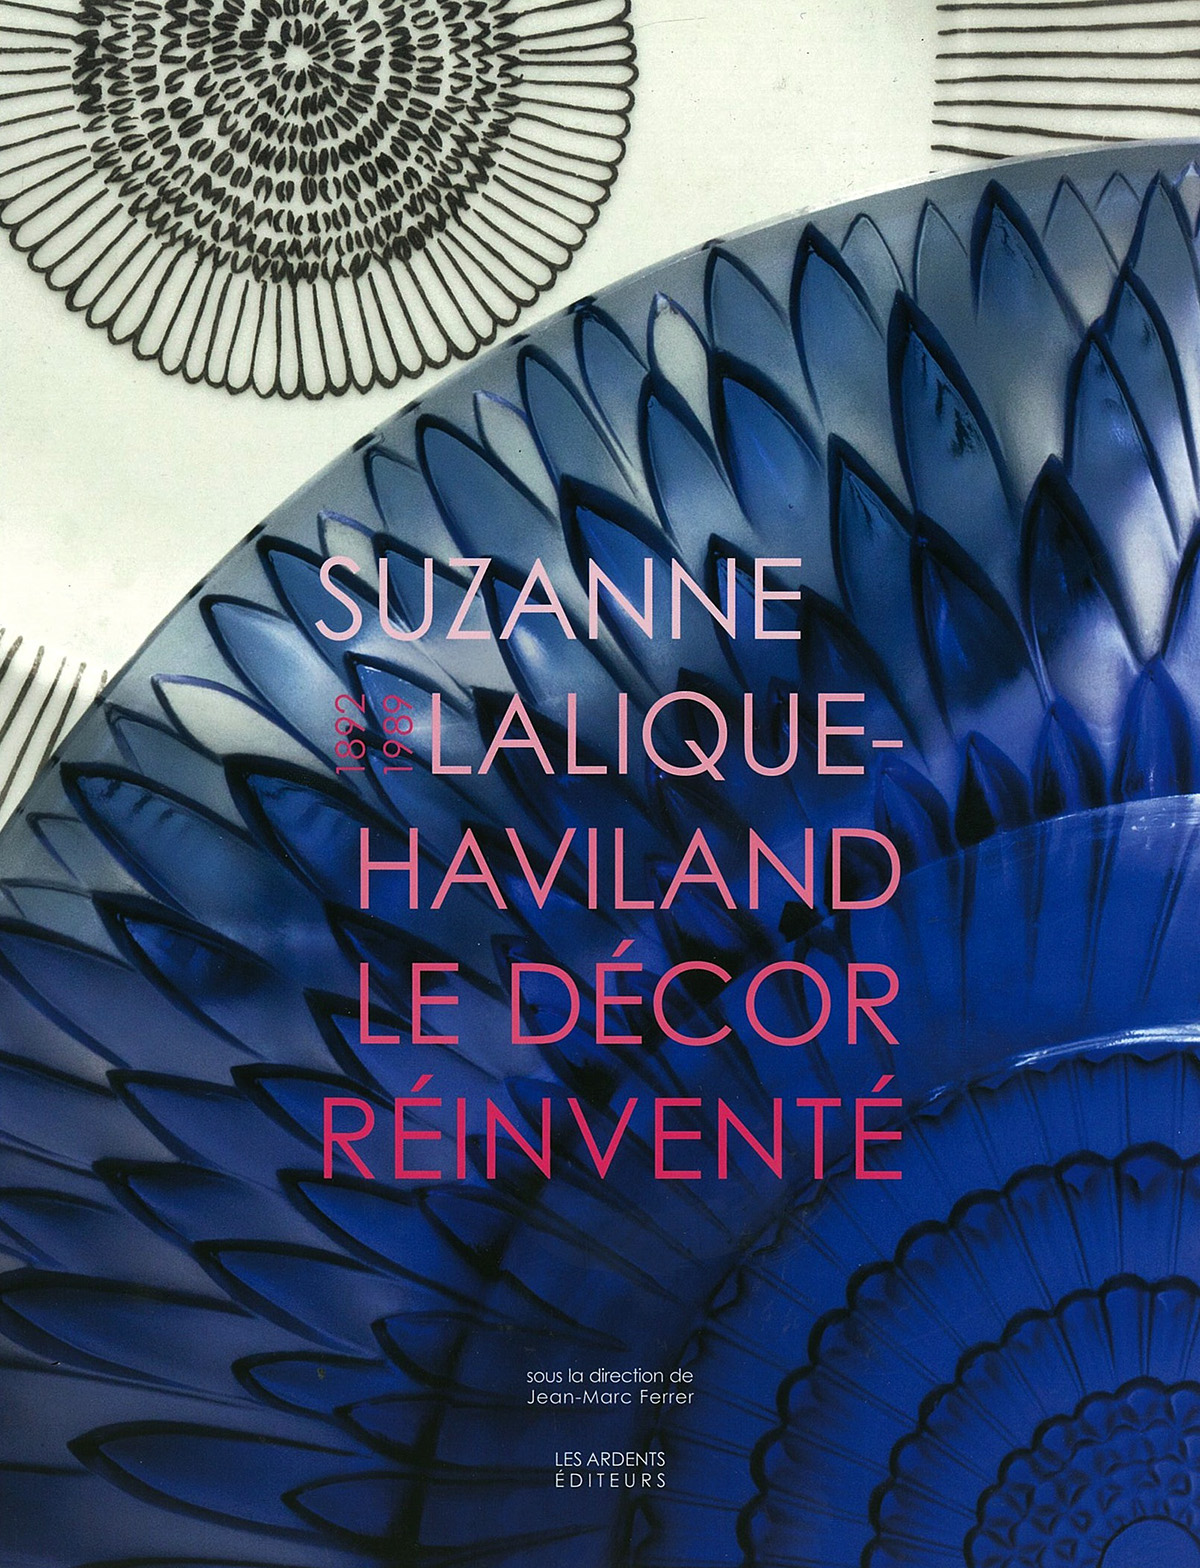 Suzanne Lalique-Haviland